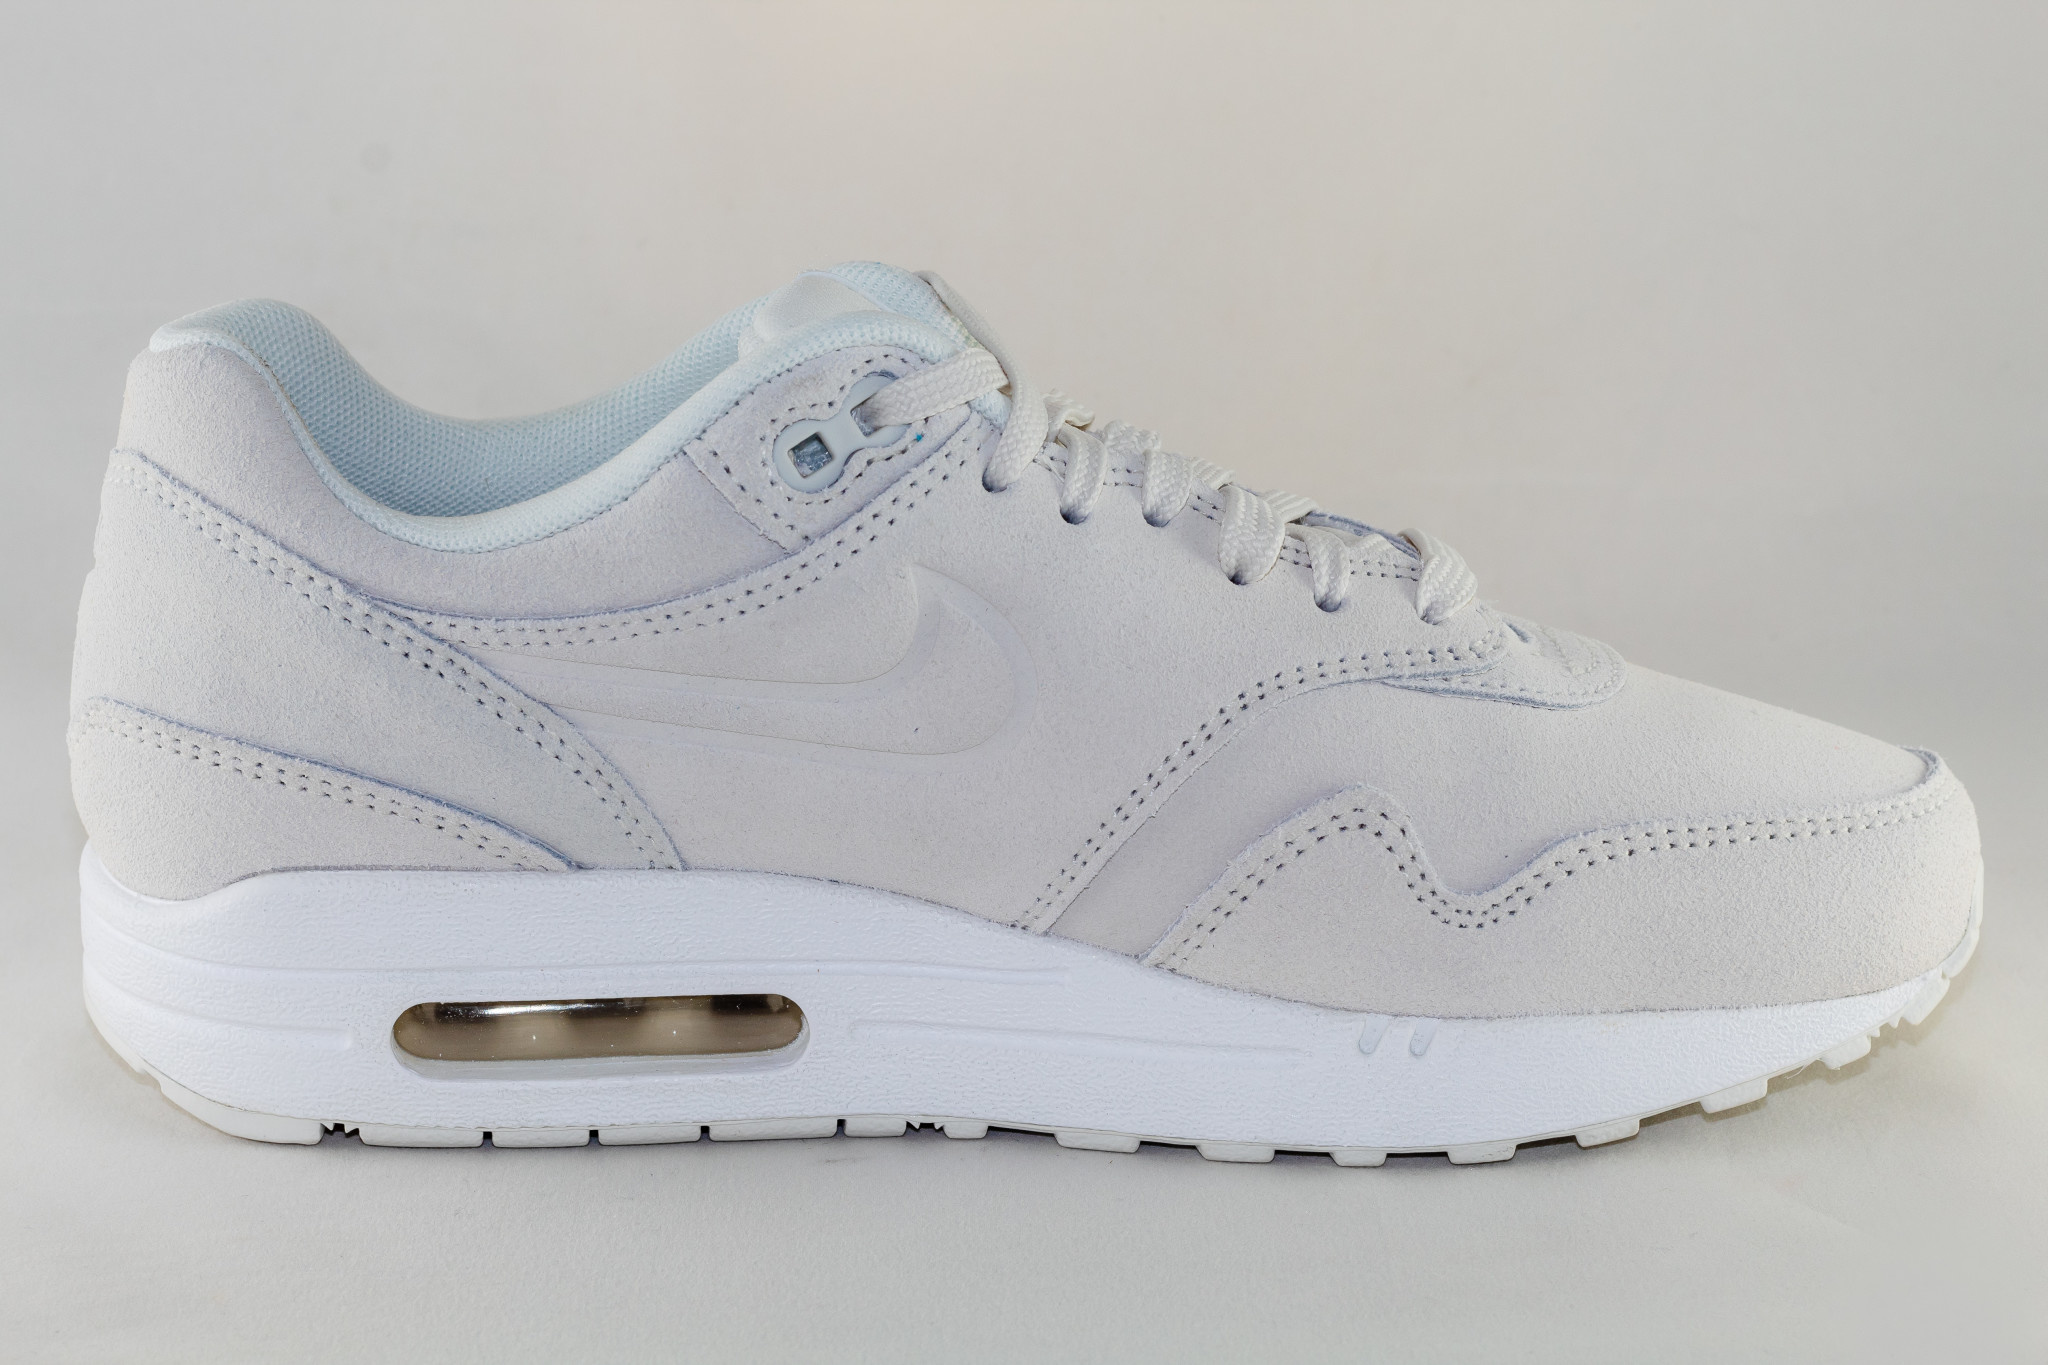 Nike NIKE WMNS AIR MAX 1 Summit White/ Summit White